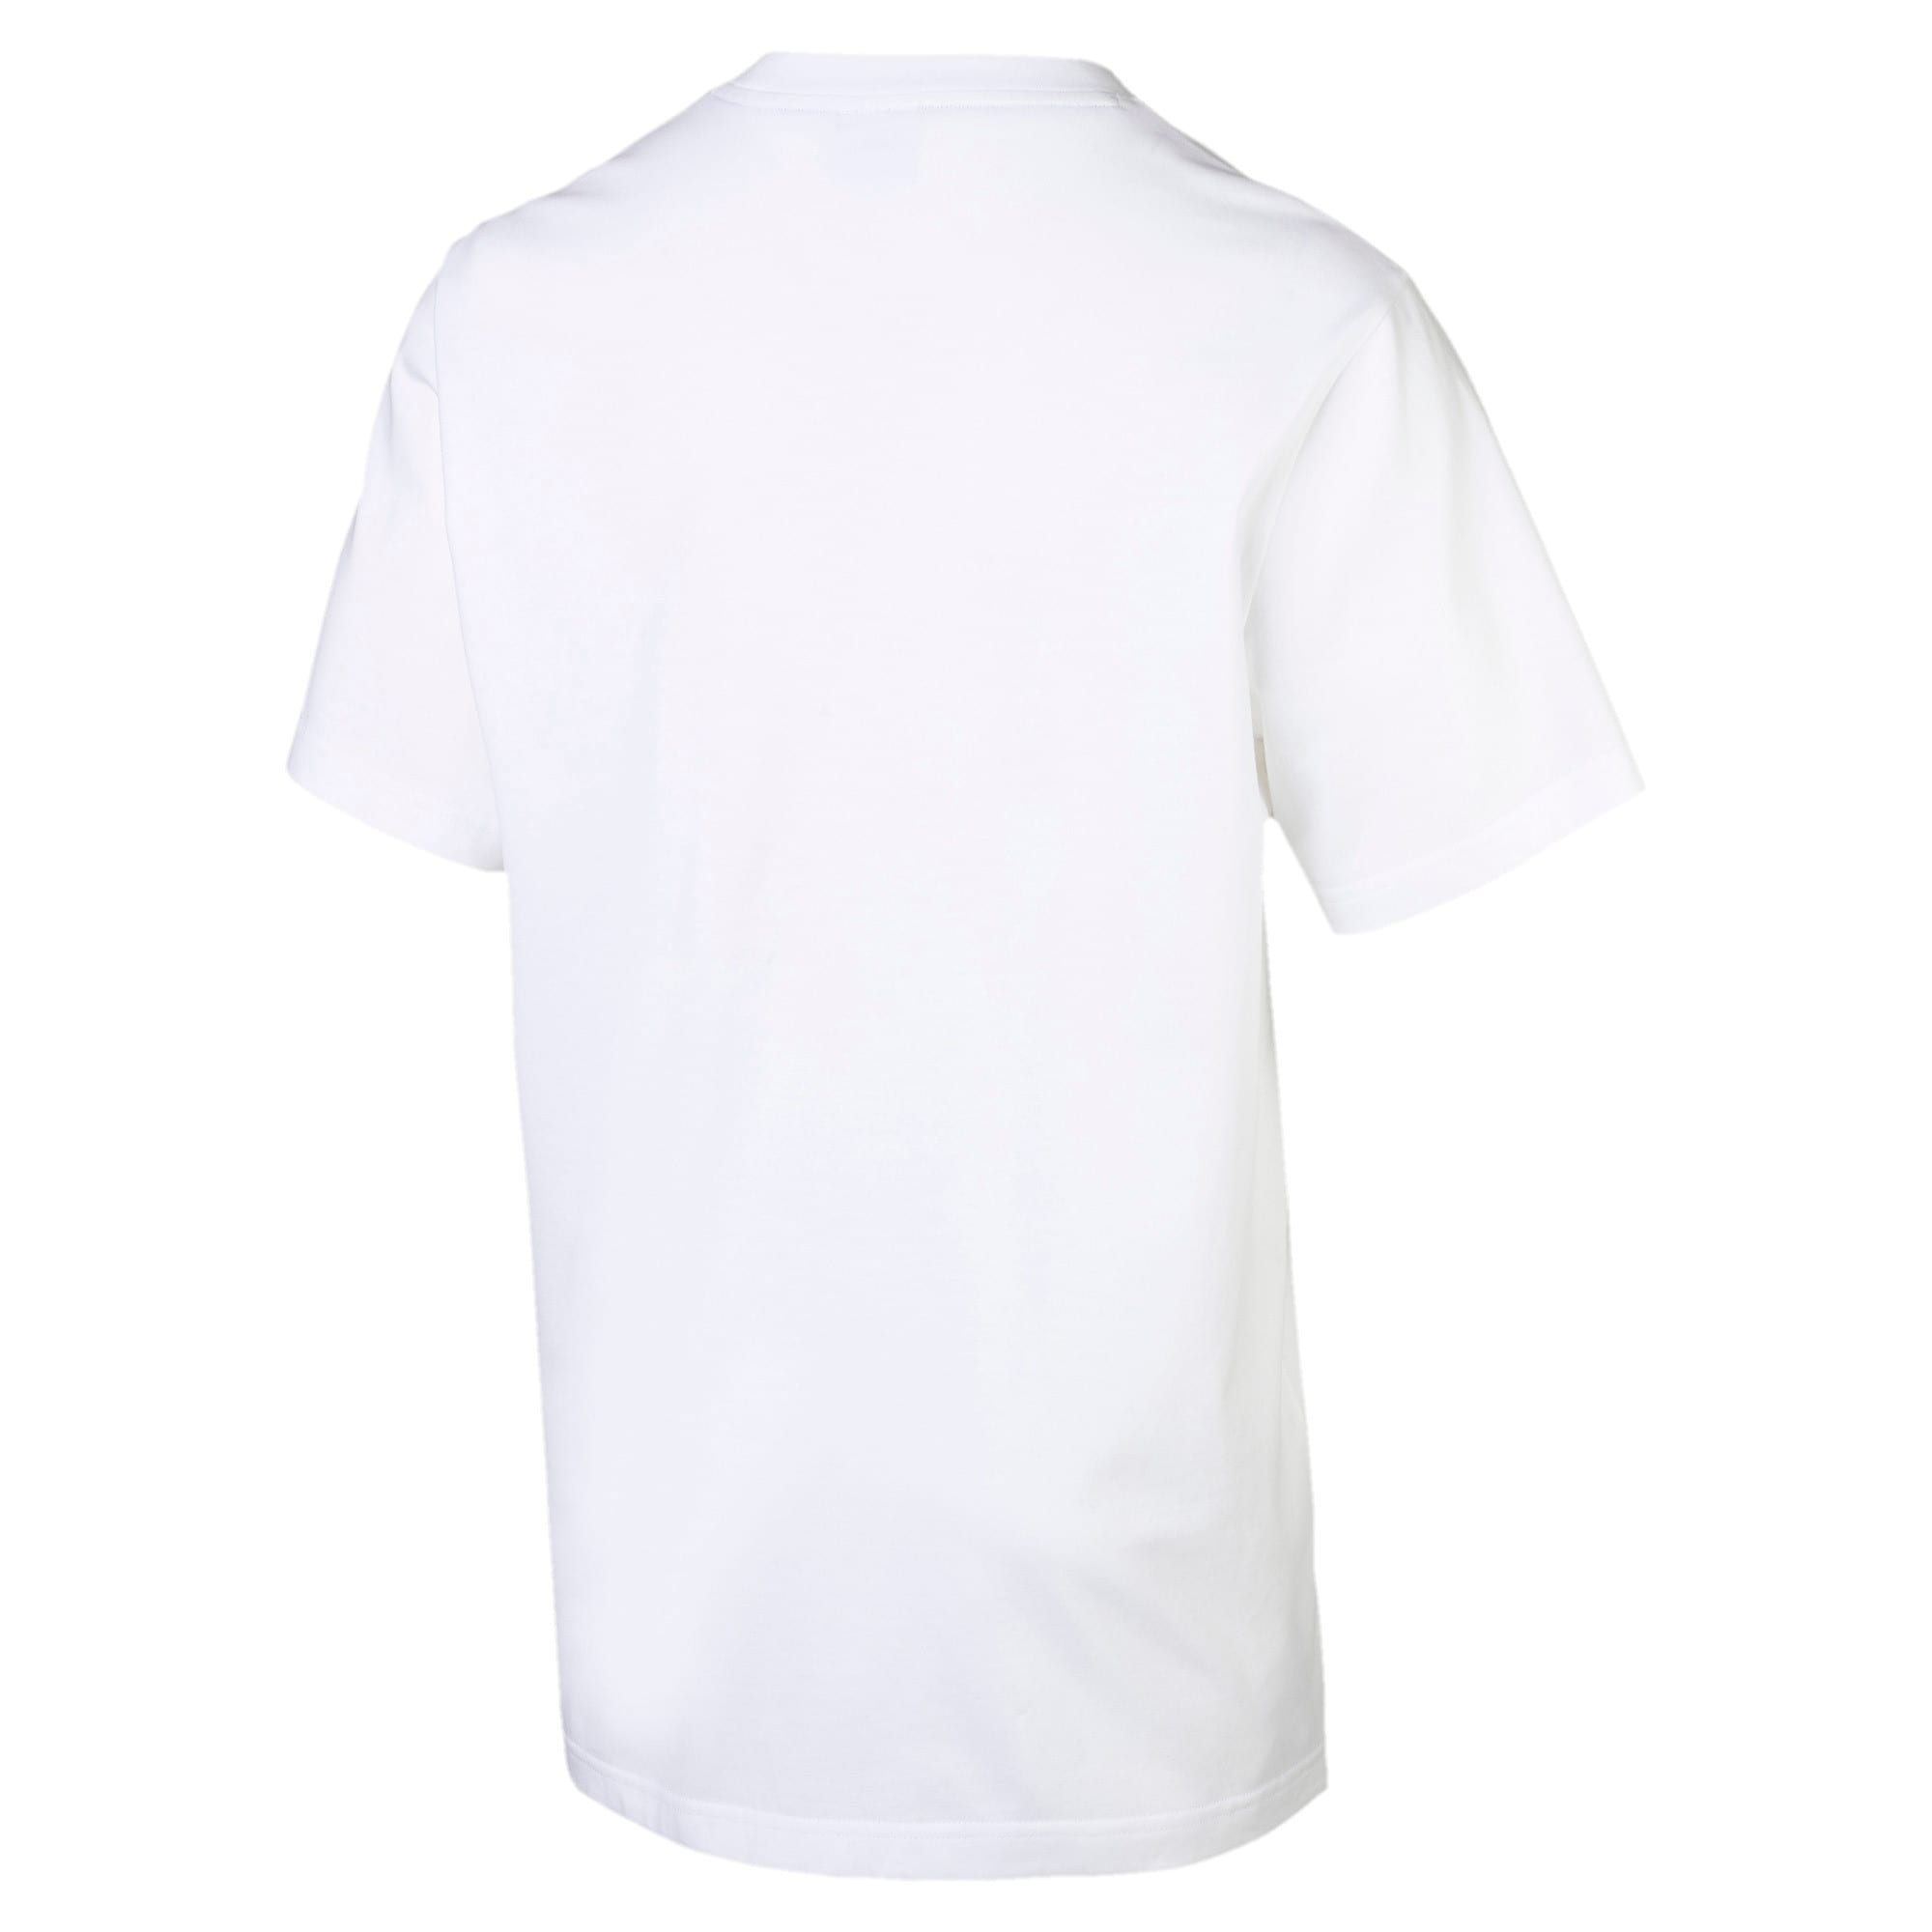 Thumbnail 4 of Archive Pinstripe Graphic Men's Tee, Puma White, medium